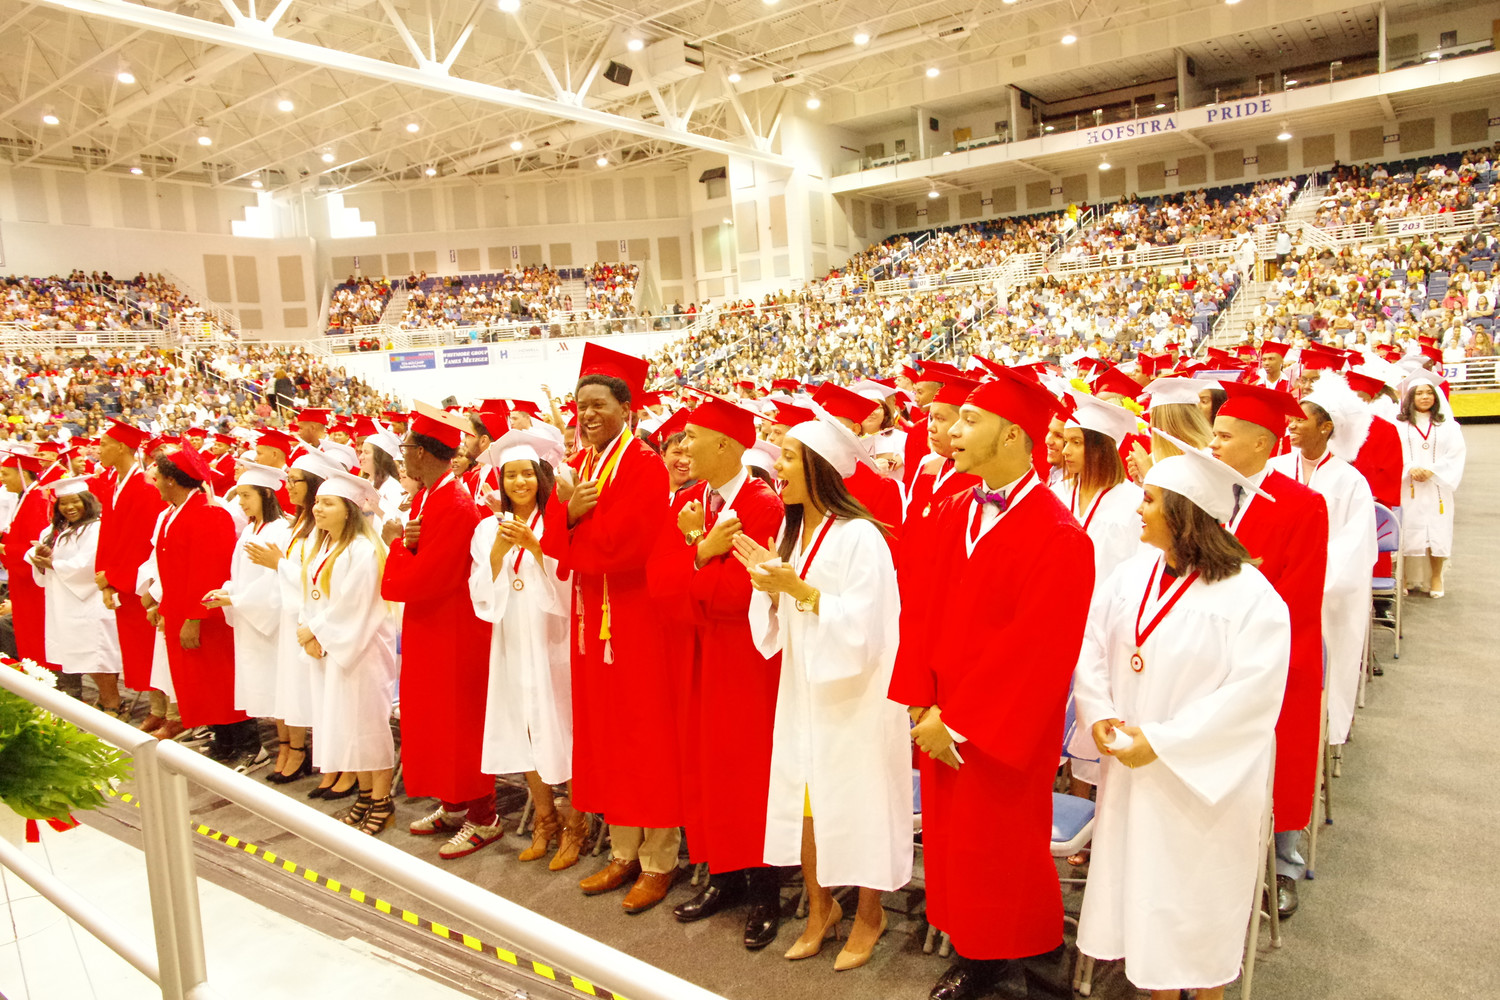 Members of the Freeport High School class of 2018 cheered at their June 27 graduation ceremony at Hofstra University's David S. Mack Sports and Exhibition Complex.